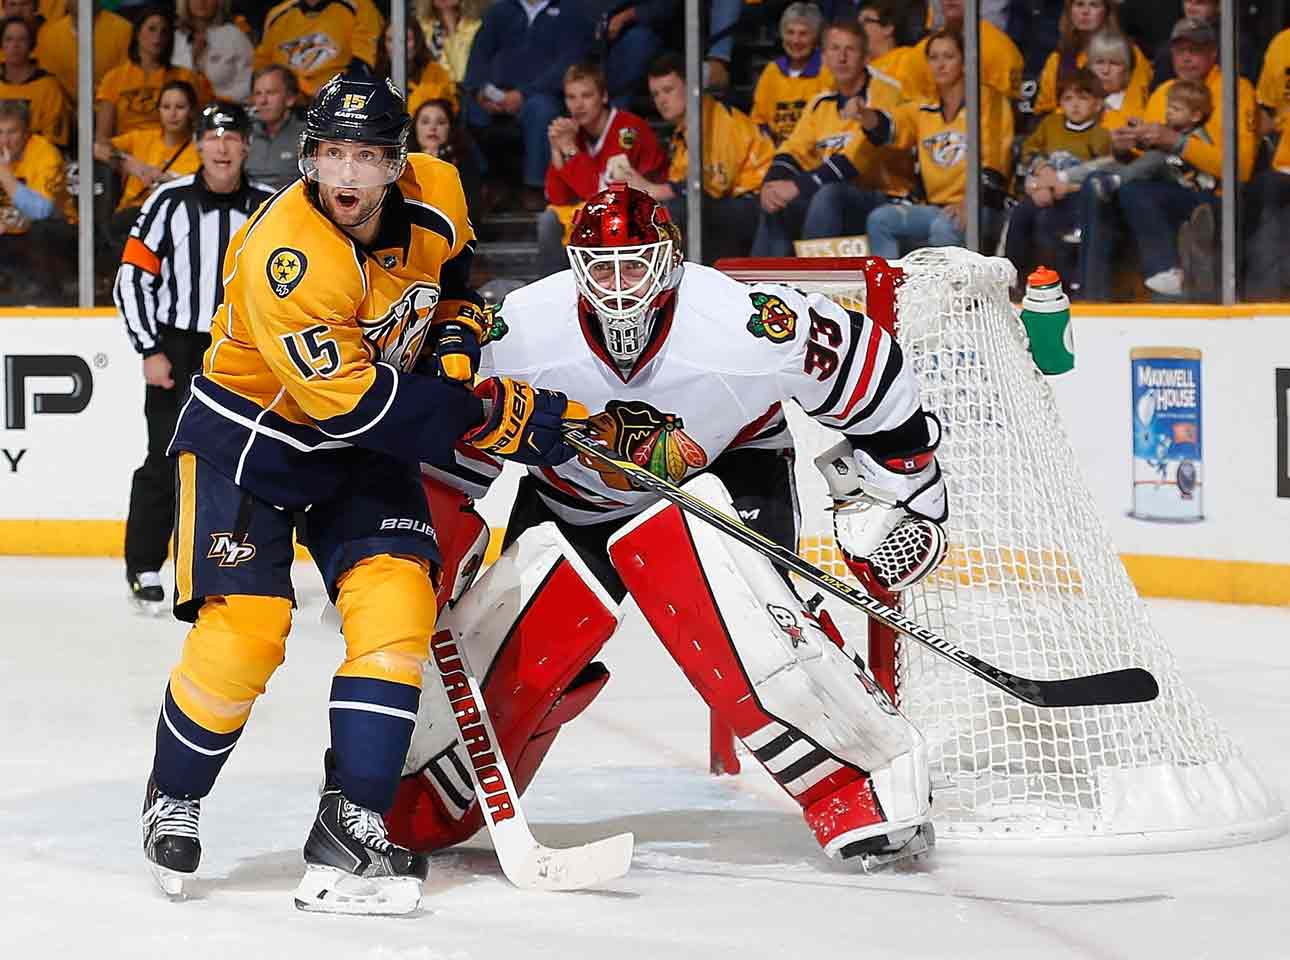 Bolstered by the amazingly fast return of Patrick Kane for Game 1 of their first round series vs. the Predators, the Hawks rally for a 4-3 win in Nashville. Kane chips in two assists and the winner is scored by Duncan Keith at 7:49 of the second overtime. Goalie Scott Darling makes one of the great relief appearances in NHL history by blanking the Preds after entering the game to start the second period. He becomes Chicago's starter for the next three games.